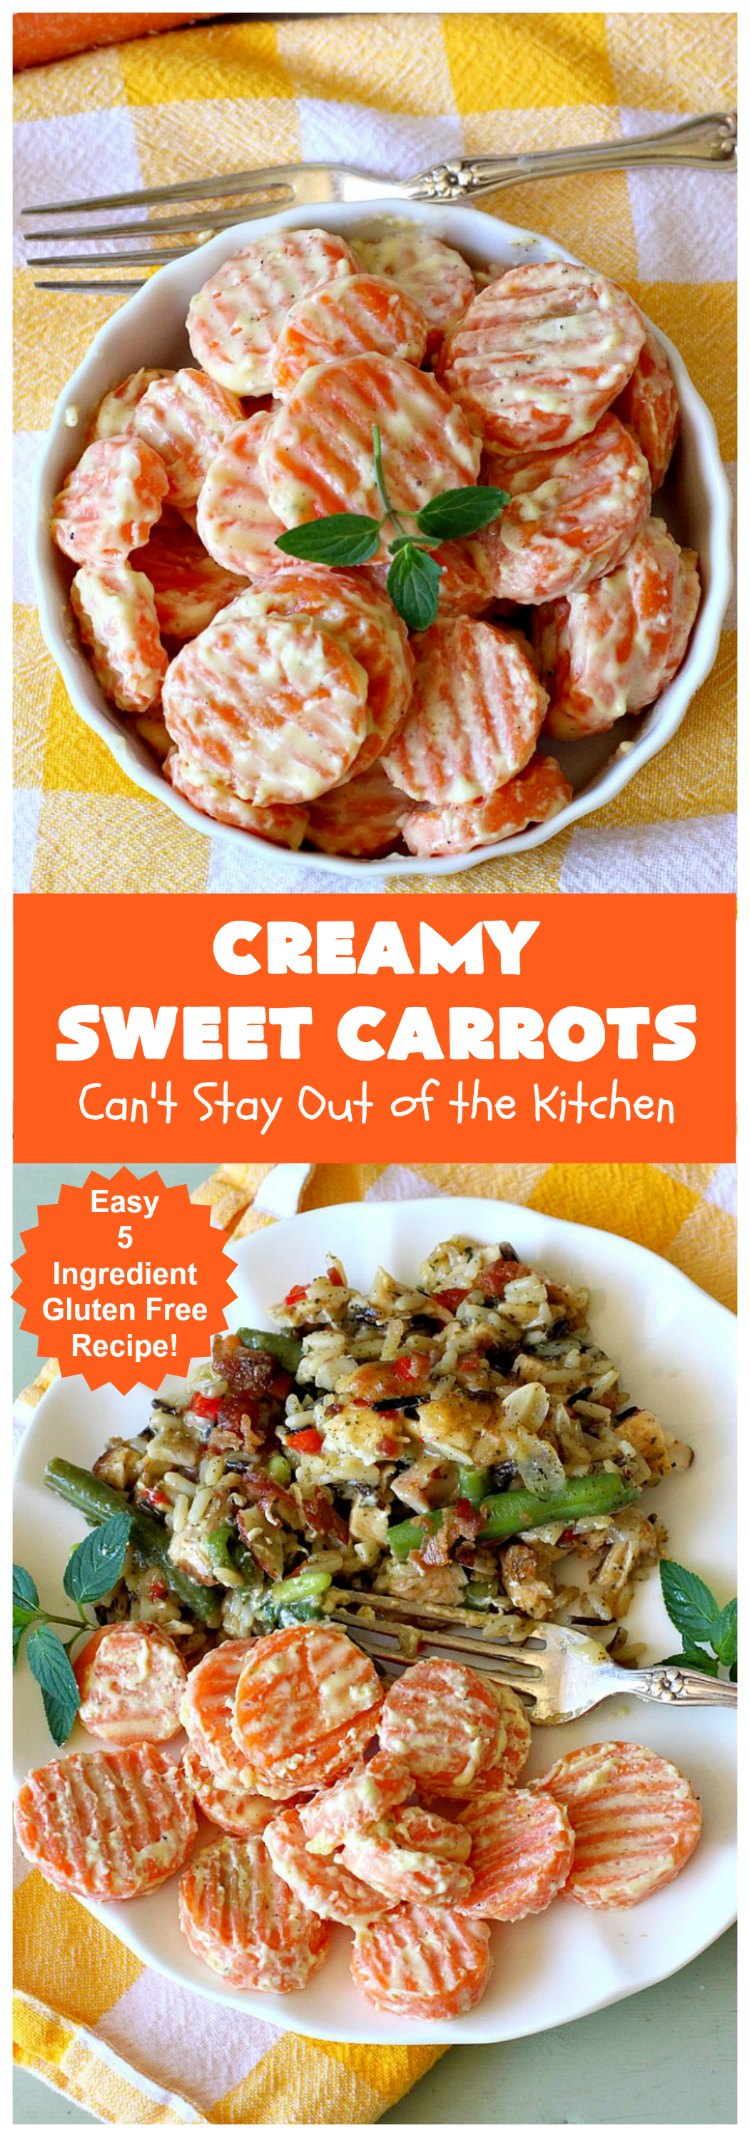 Creamy Sweet Carrots | Can't Stay Out of the Kitchen | easy 5-ingredient #recipe that can be whipped up in 10 minutes! Great for weeknight, company or #holiday dinners. #GlutenFree #Carrots #CreamCheese #CreamySweetCarrots